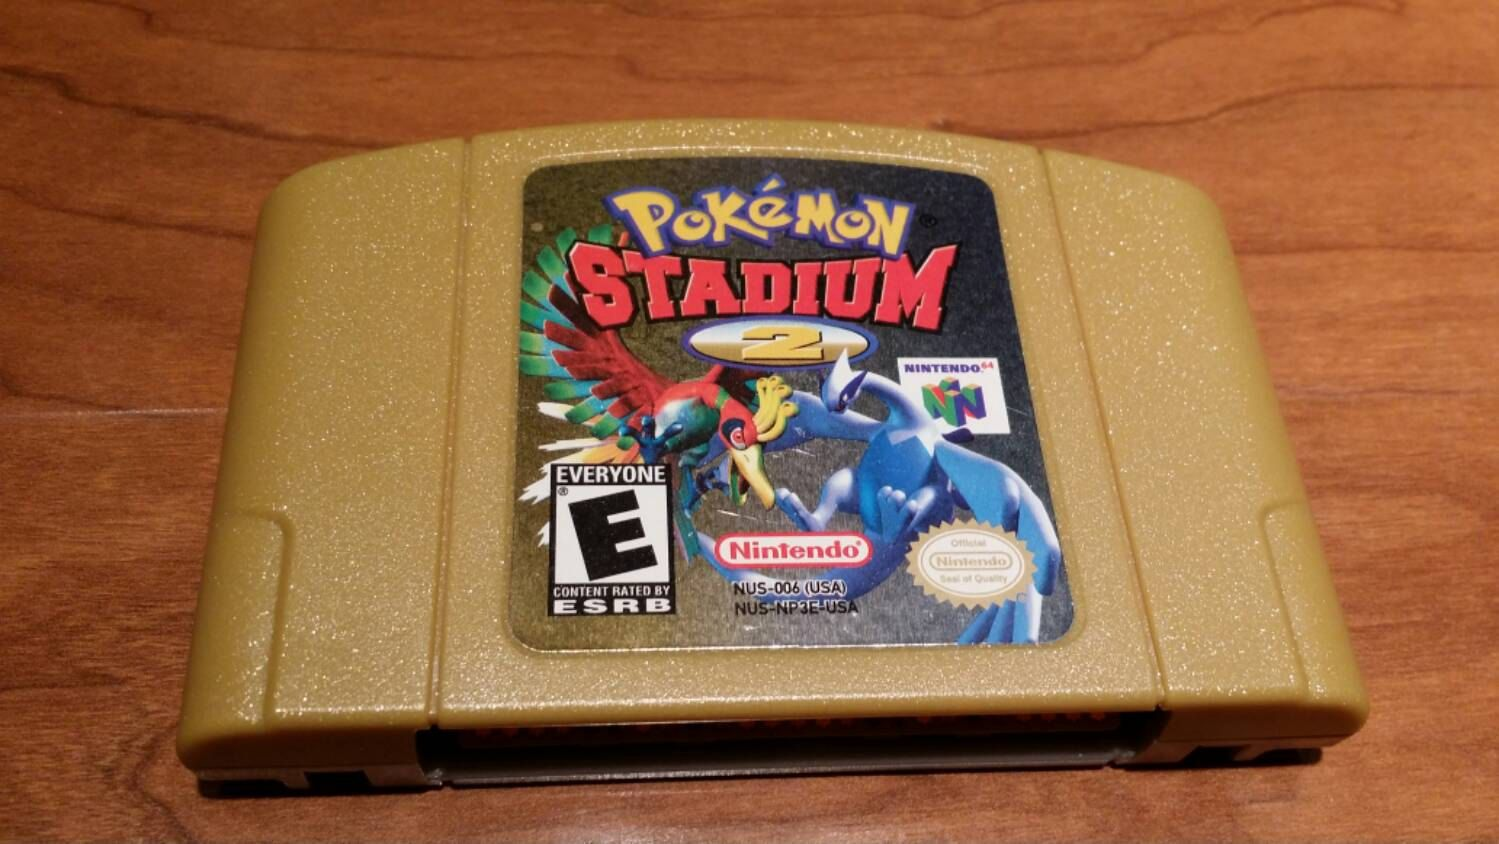 Pokemon stadium 2 Nintendo 64 video game  n64 Pok    mon stadium 2     Pokemon stadium 2 Nintendo 64 video game  n64 Pok    mon stadium 2  Pok    mon  stadium